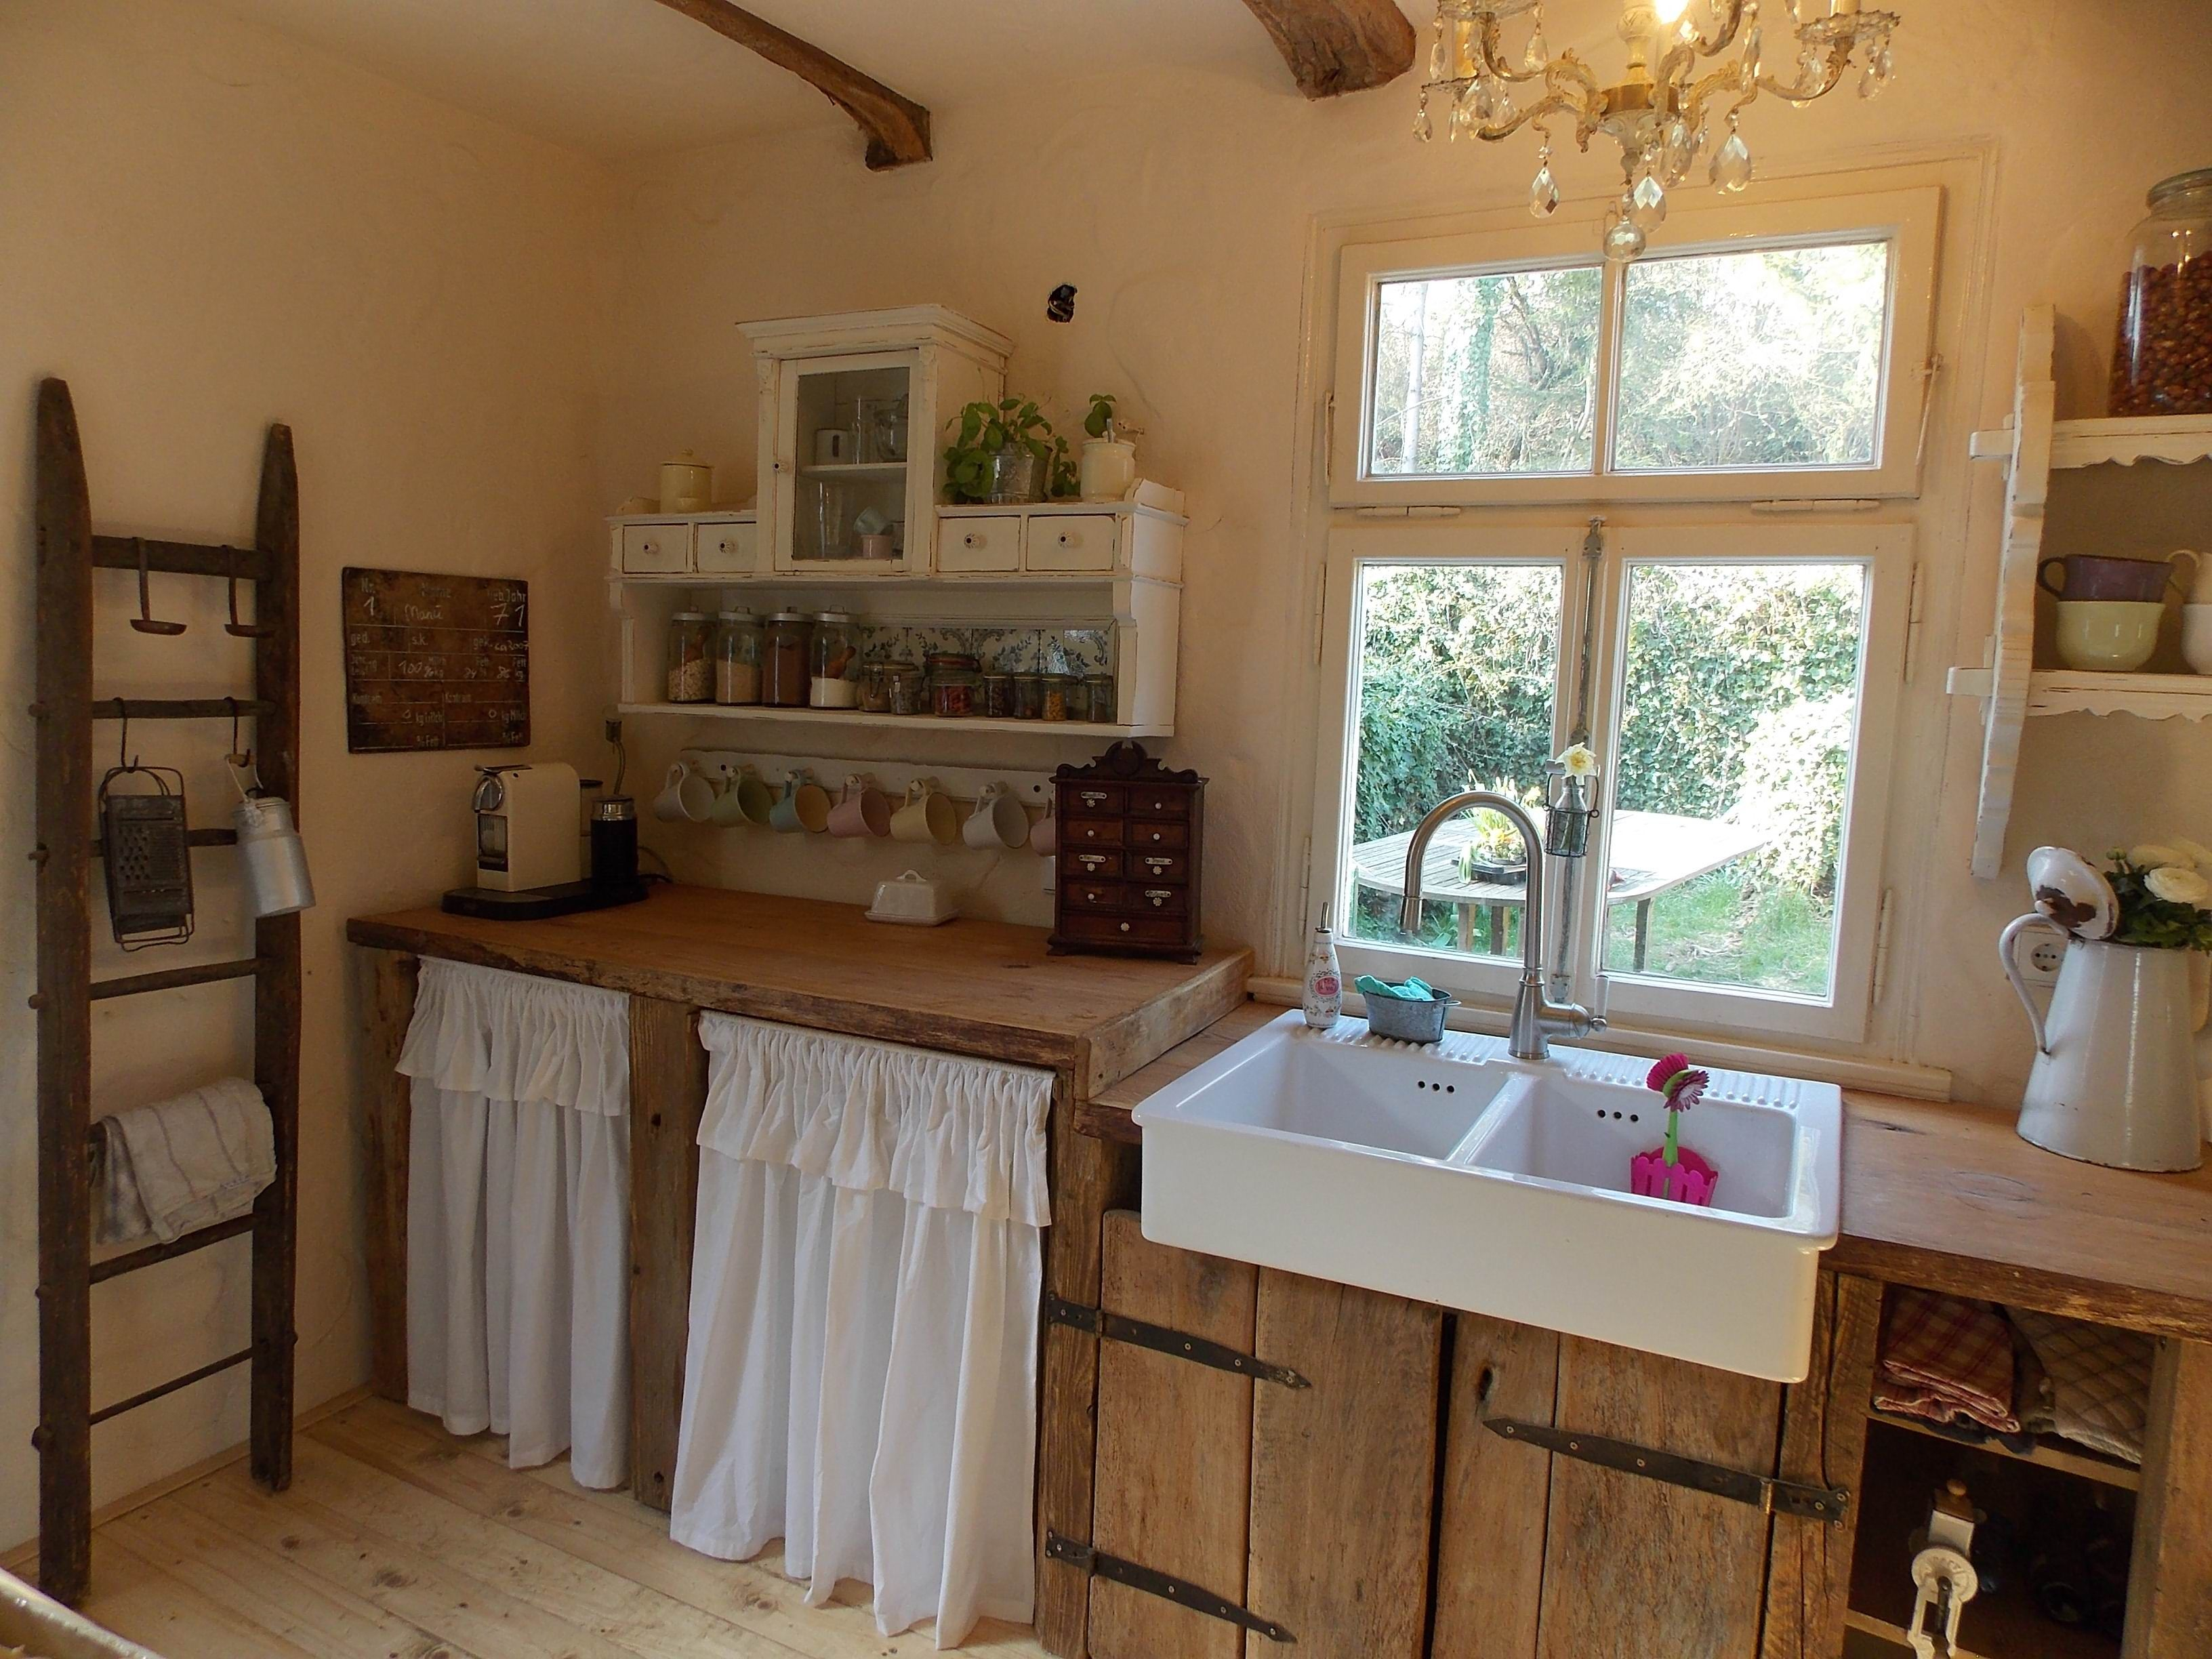 Farmhouse kitchen landhaus k che shabby chic altes - Landhausstil bilder ...